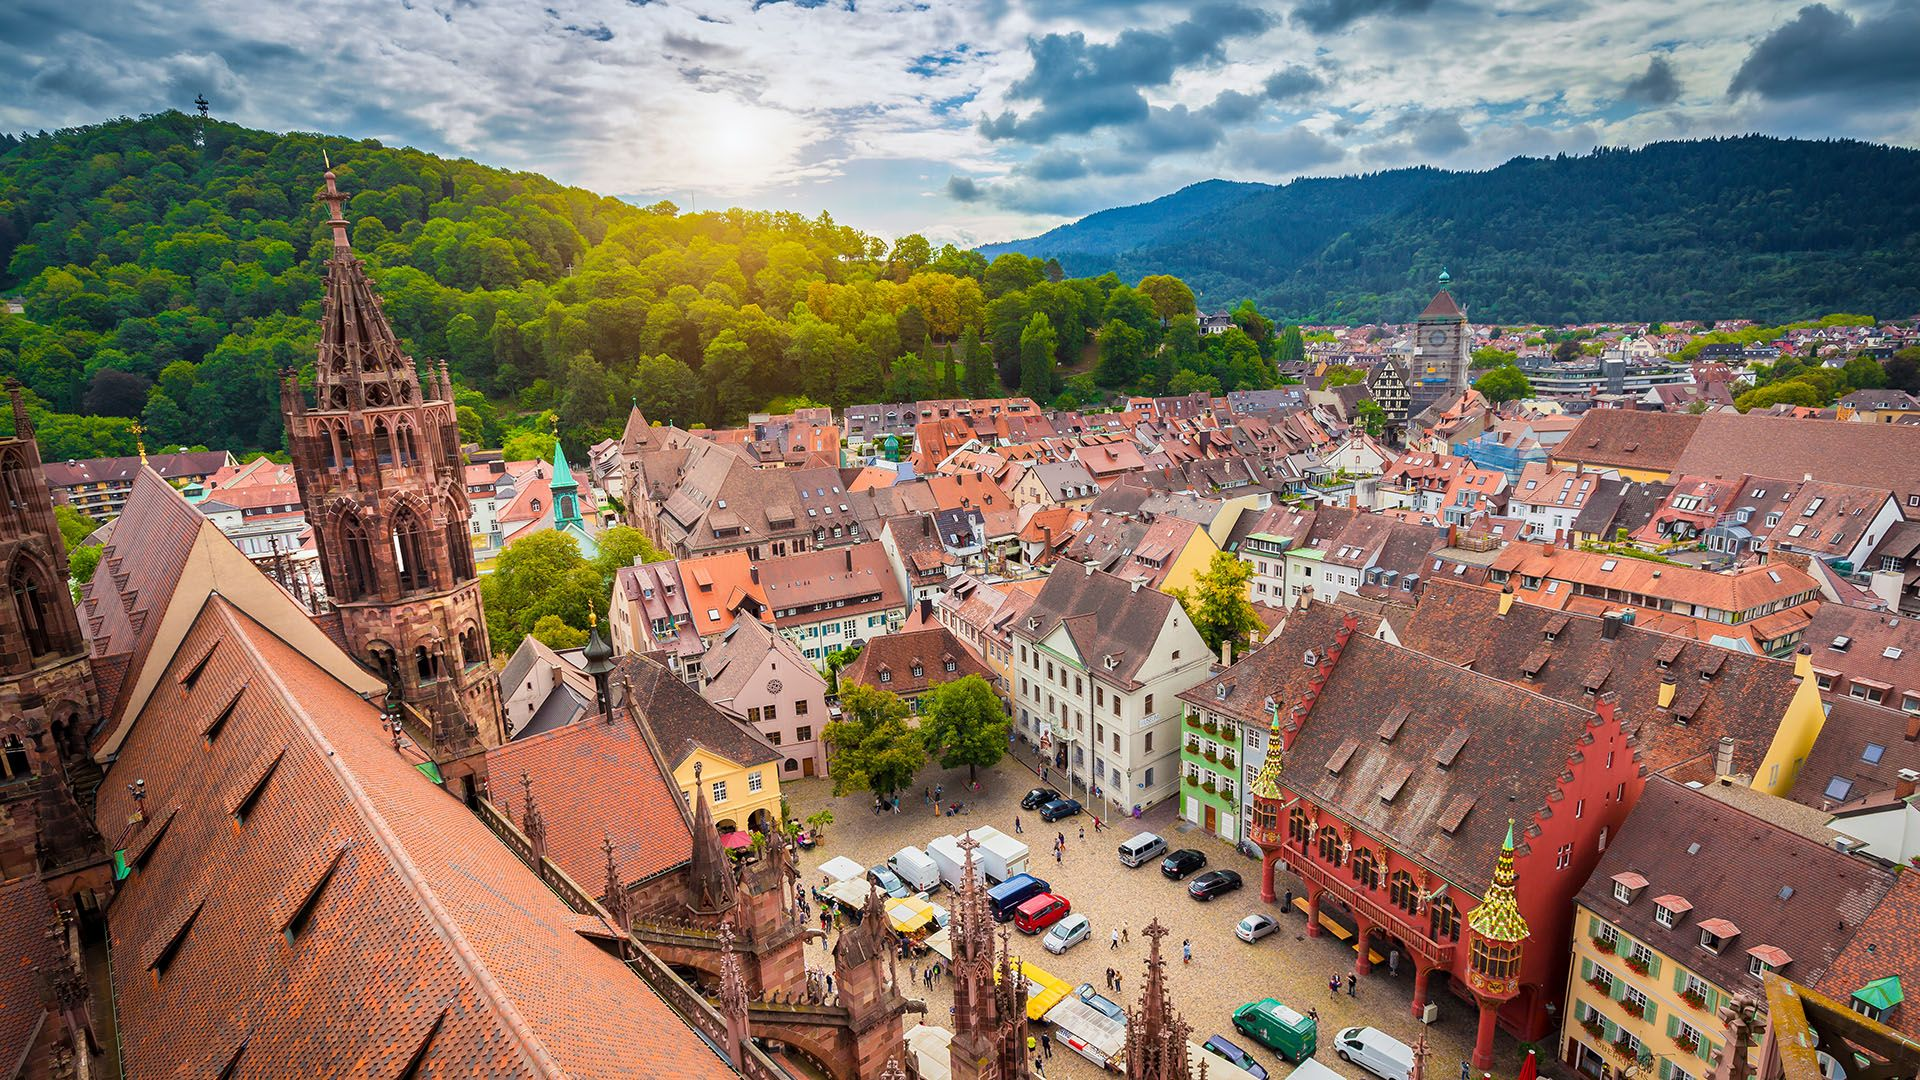 Set spectacularly at the foot of Germany's Black Forest, the medieval city of Freiburg is celebrating its 900th anniversary this year (Credit: bluejayphoto/Getty Images)